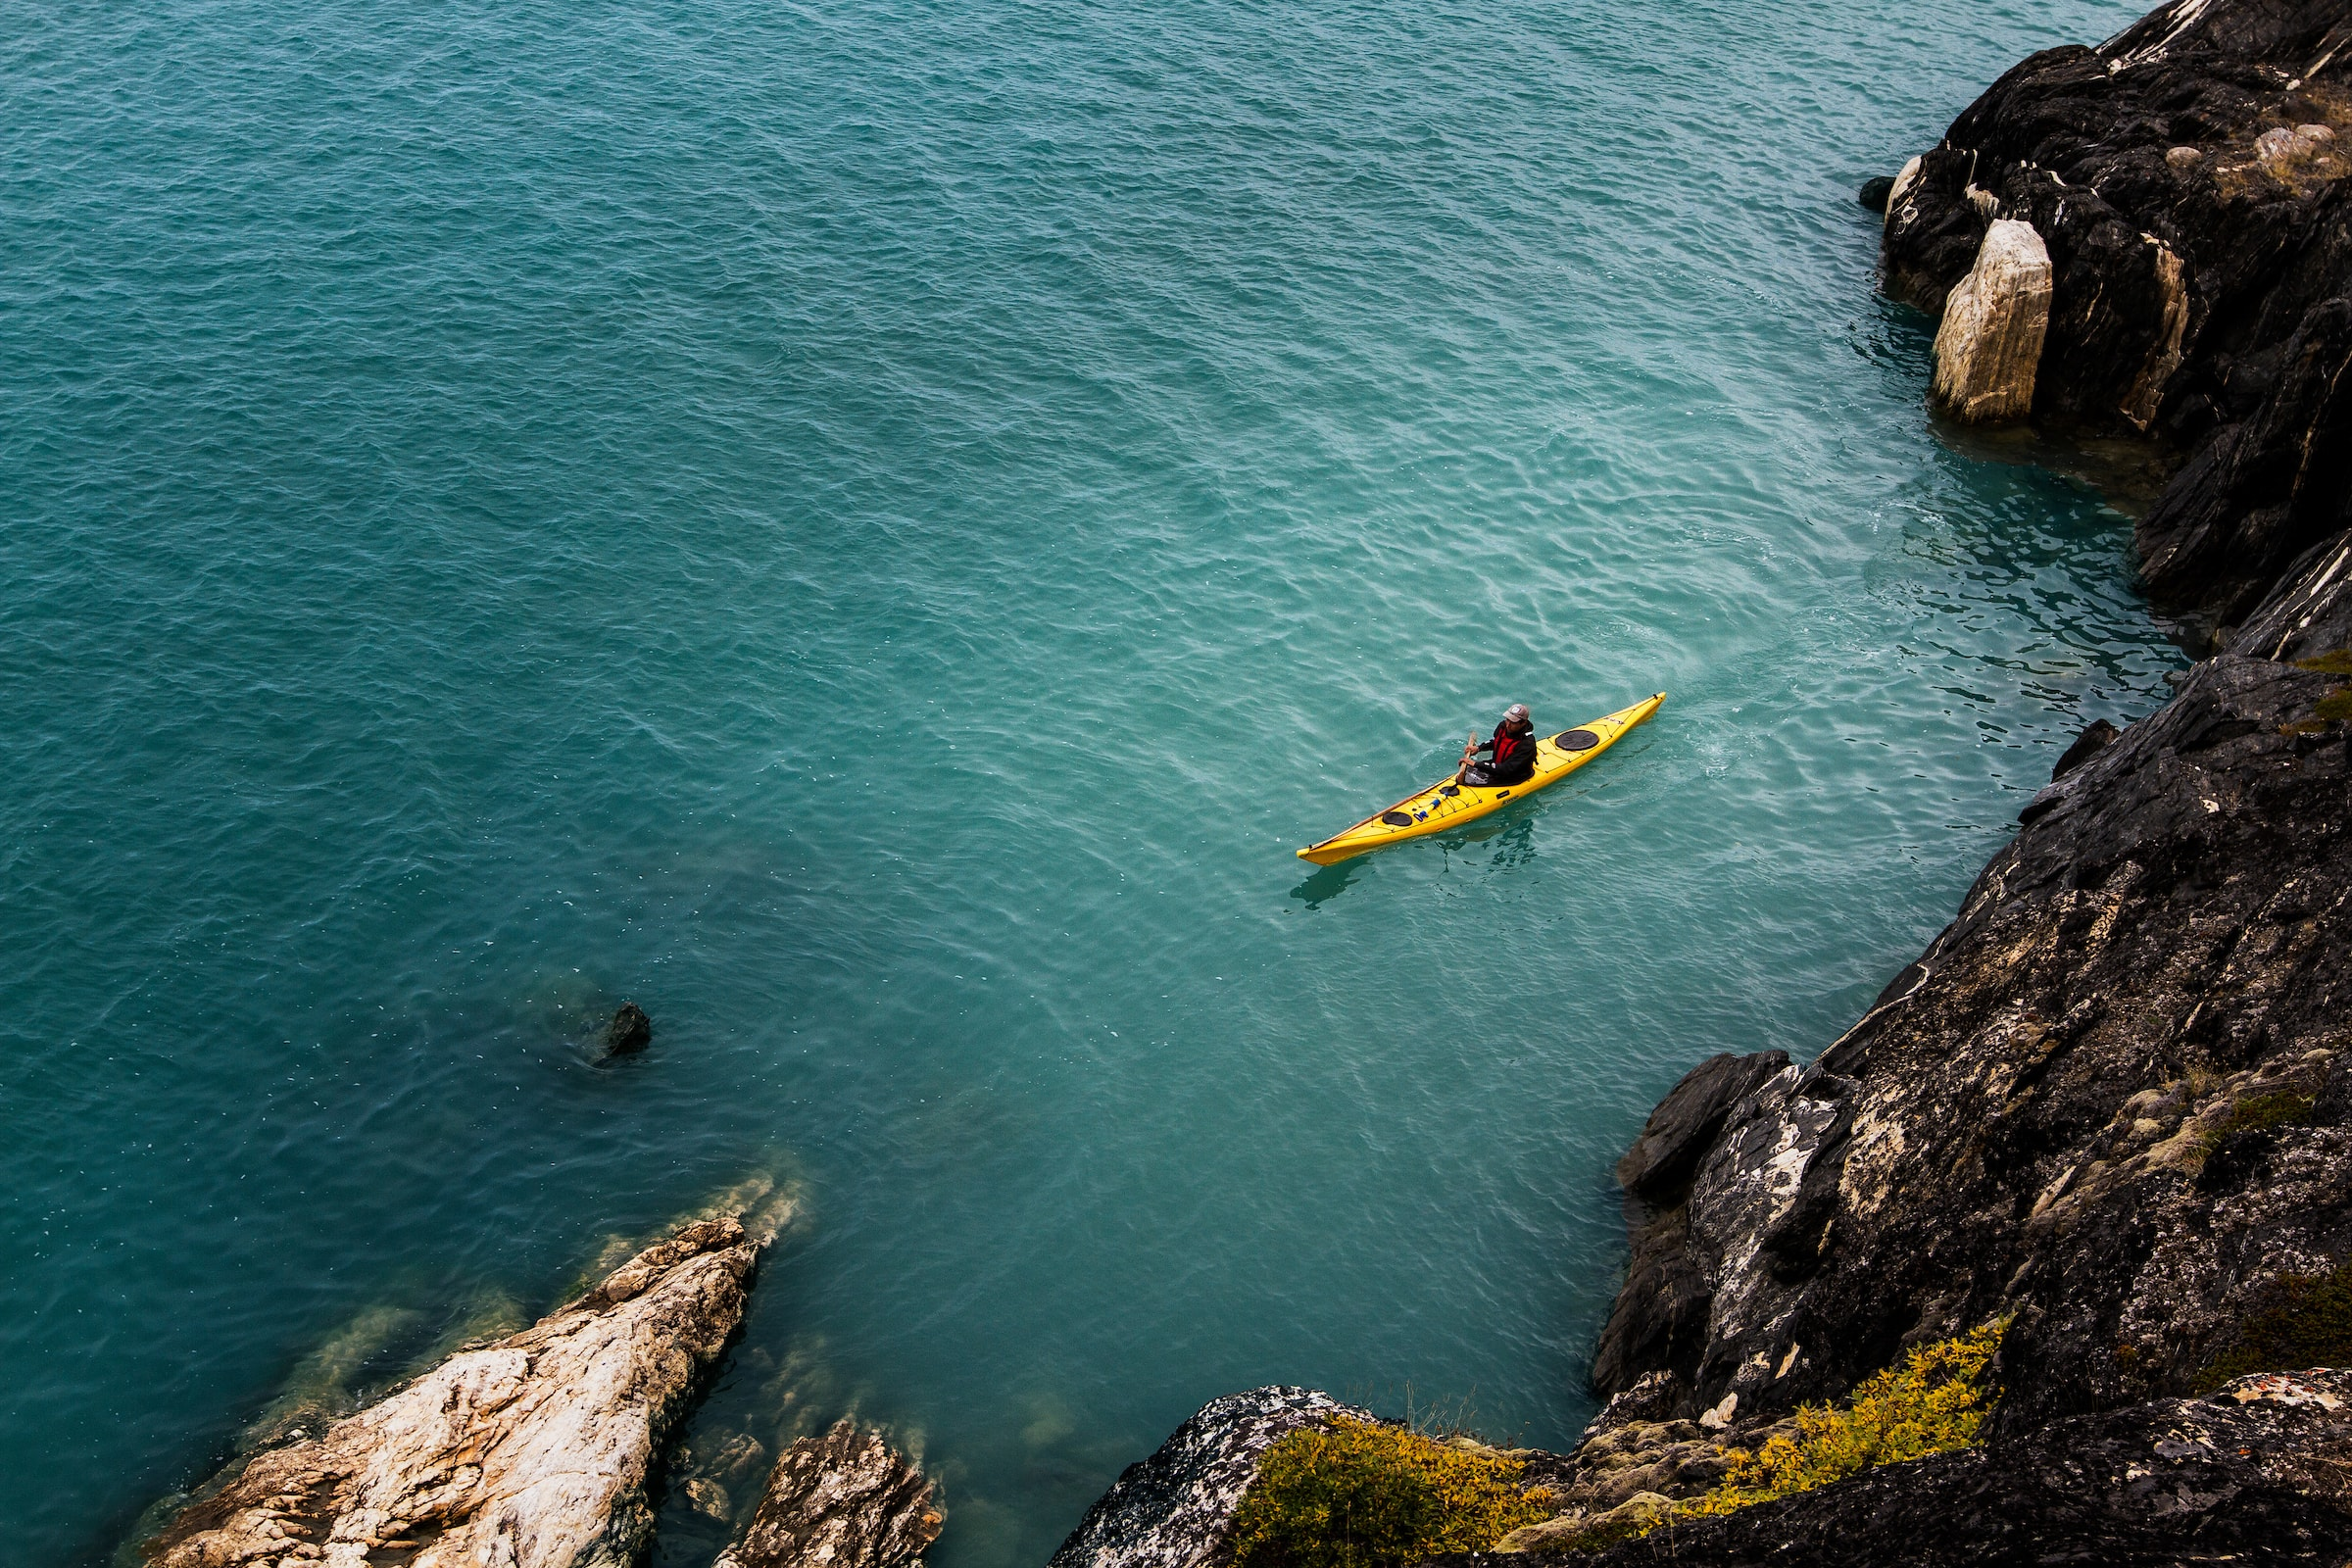 Kayaking along the cliffs of the Kangerlussuaq fjord in Greenland. Photo by Mads Pihl - Visit Greenland